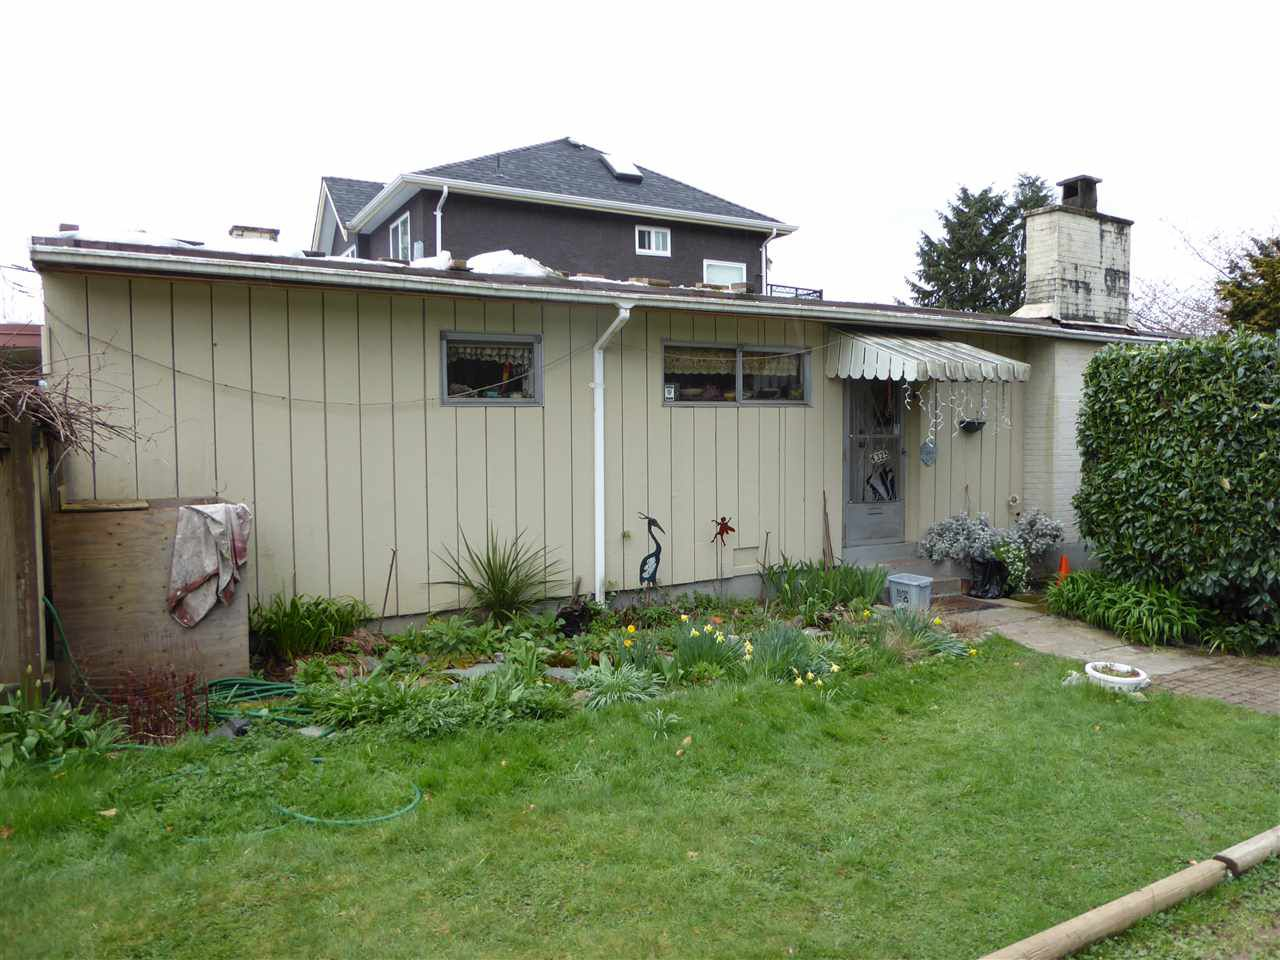 Main Photo: 4325 PENTICTON Street in Vancouver: Collingwood VE House for sale (Vancouver East)  : MLS®# R2049414